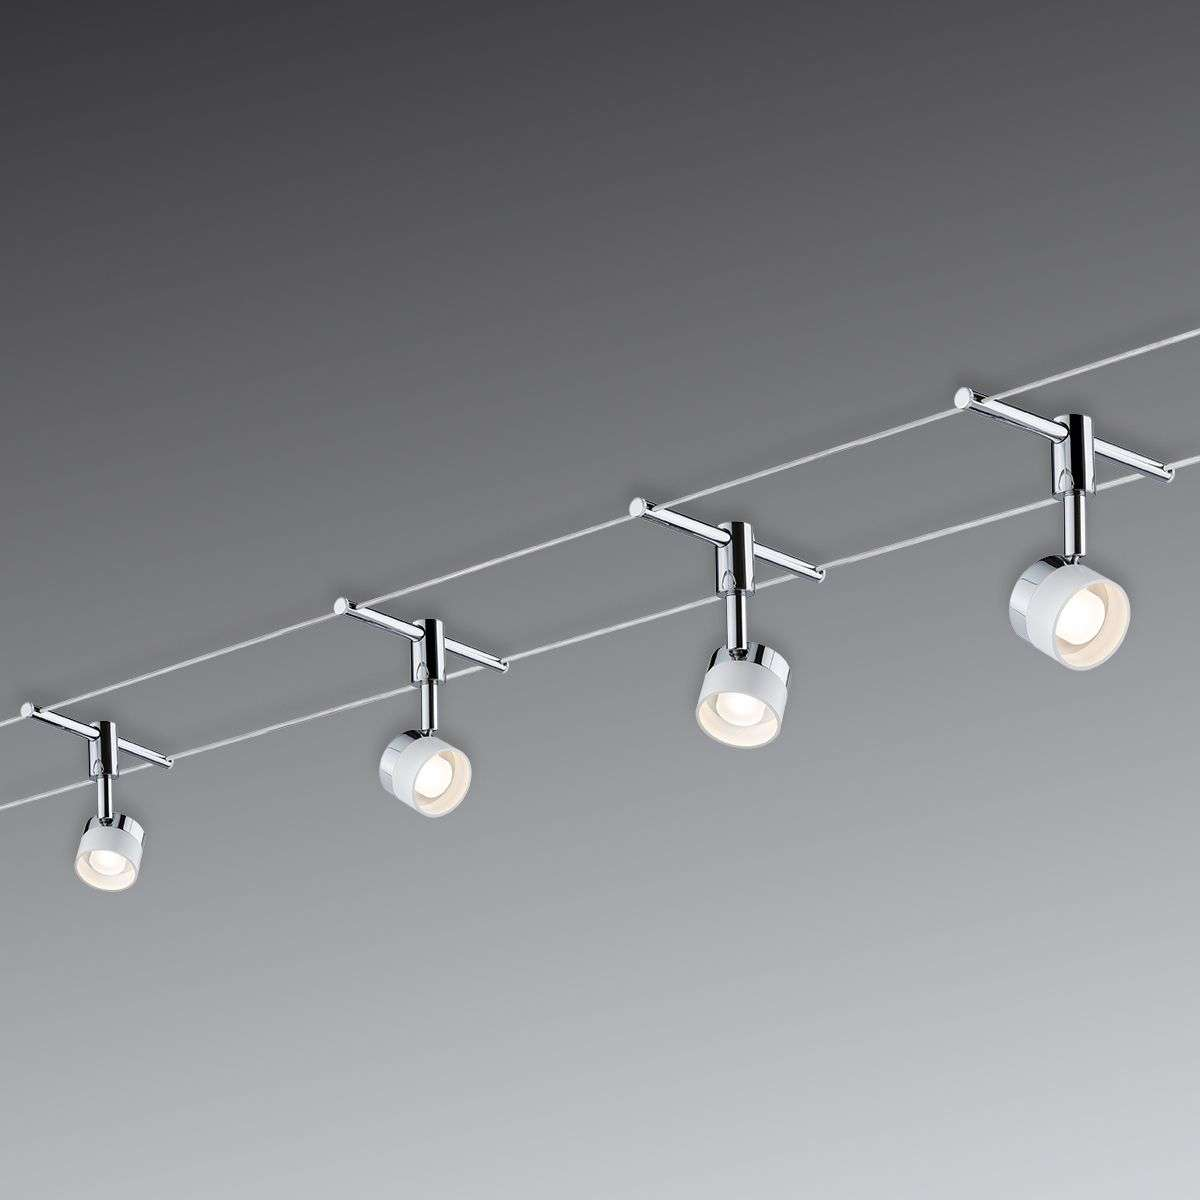 With 4 round lights - LED cable system Stage & With 4 round lights - LED cable system Stage | Lights.co.uk